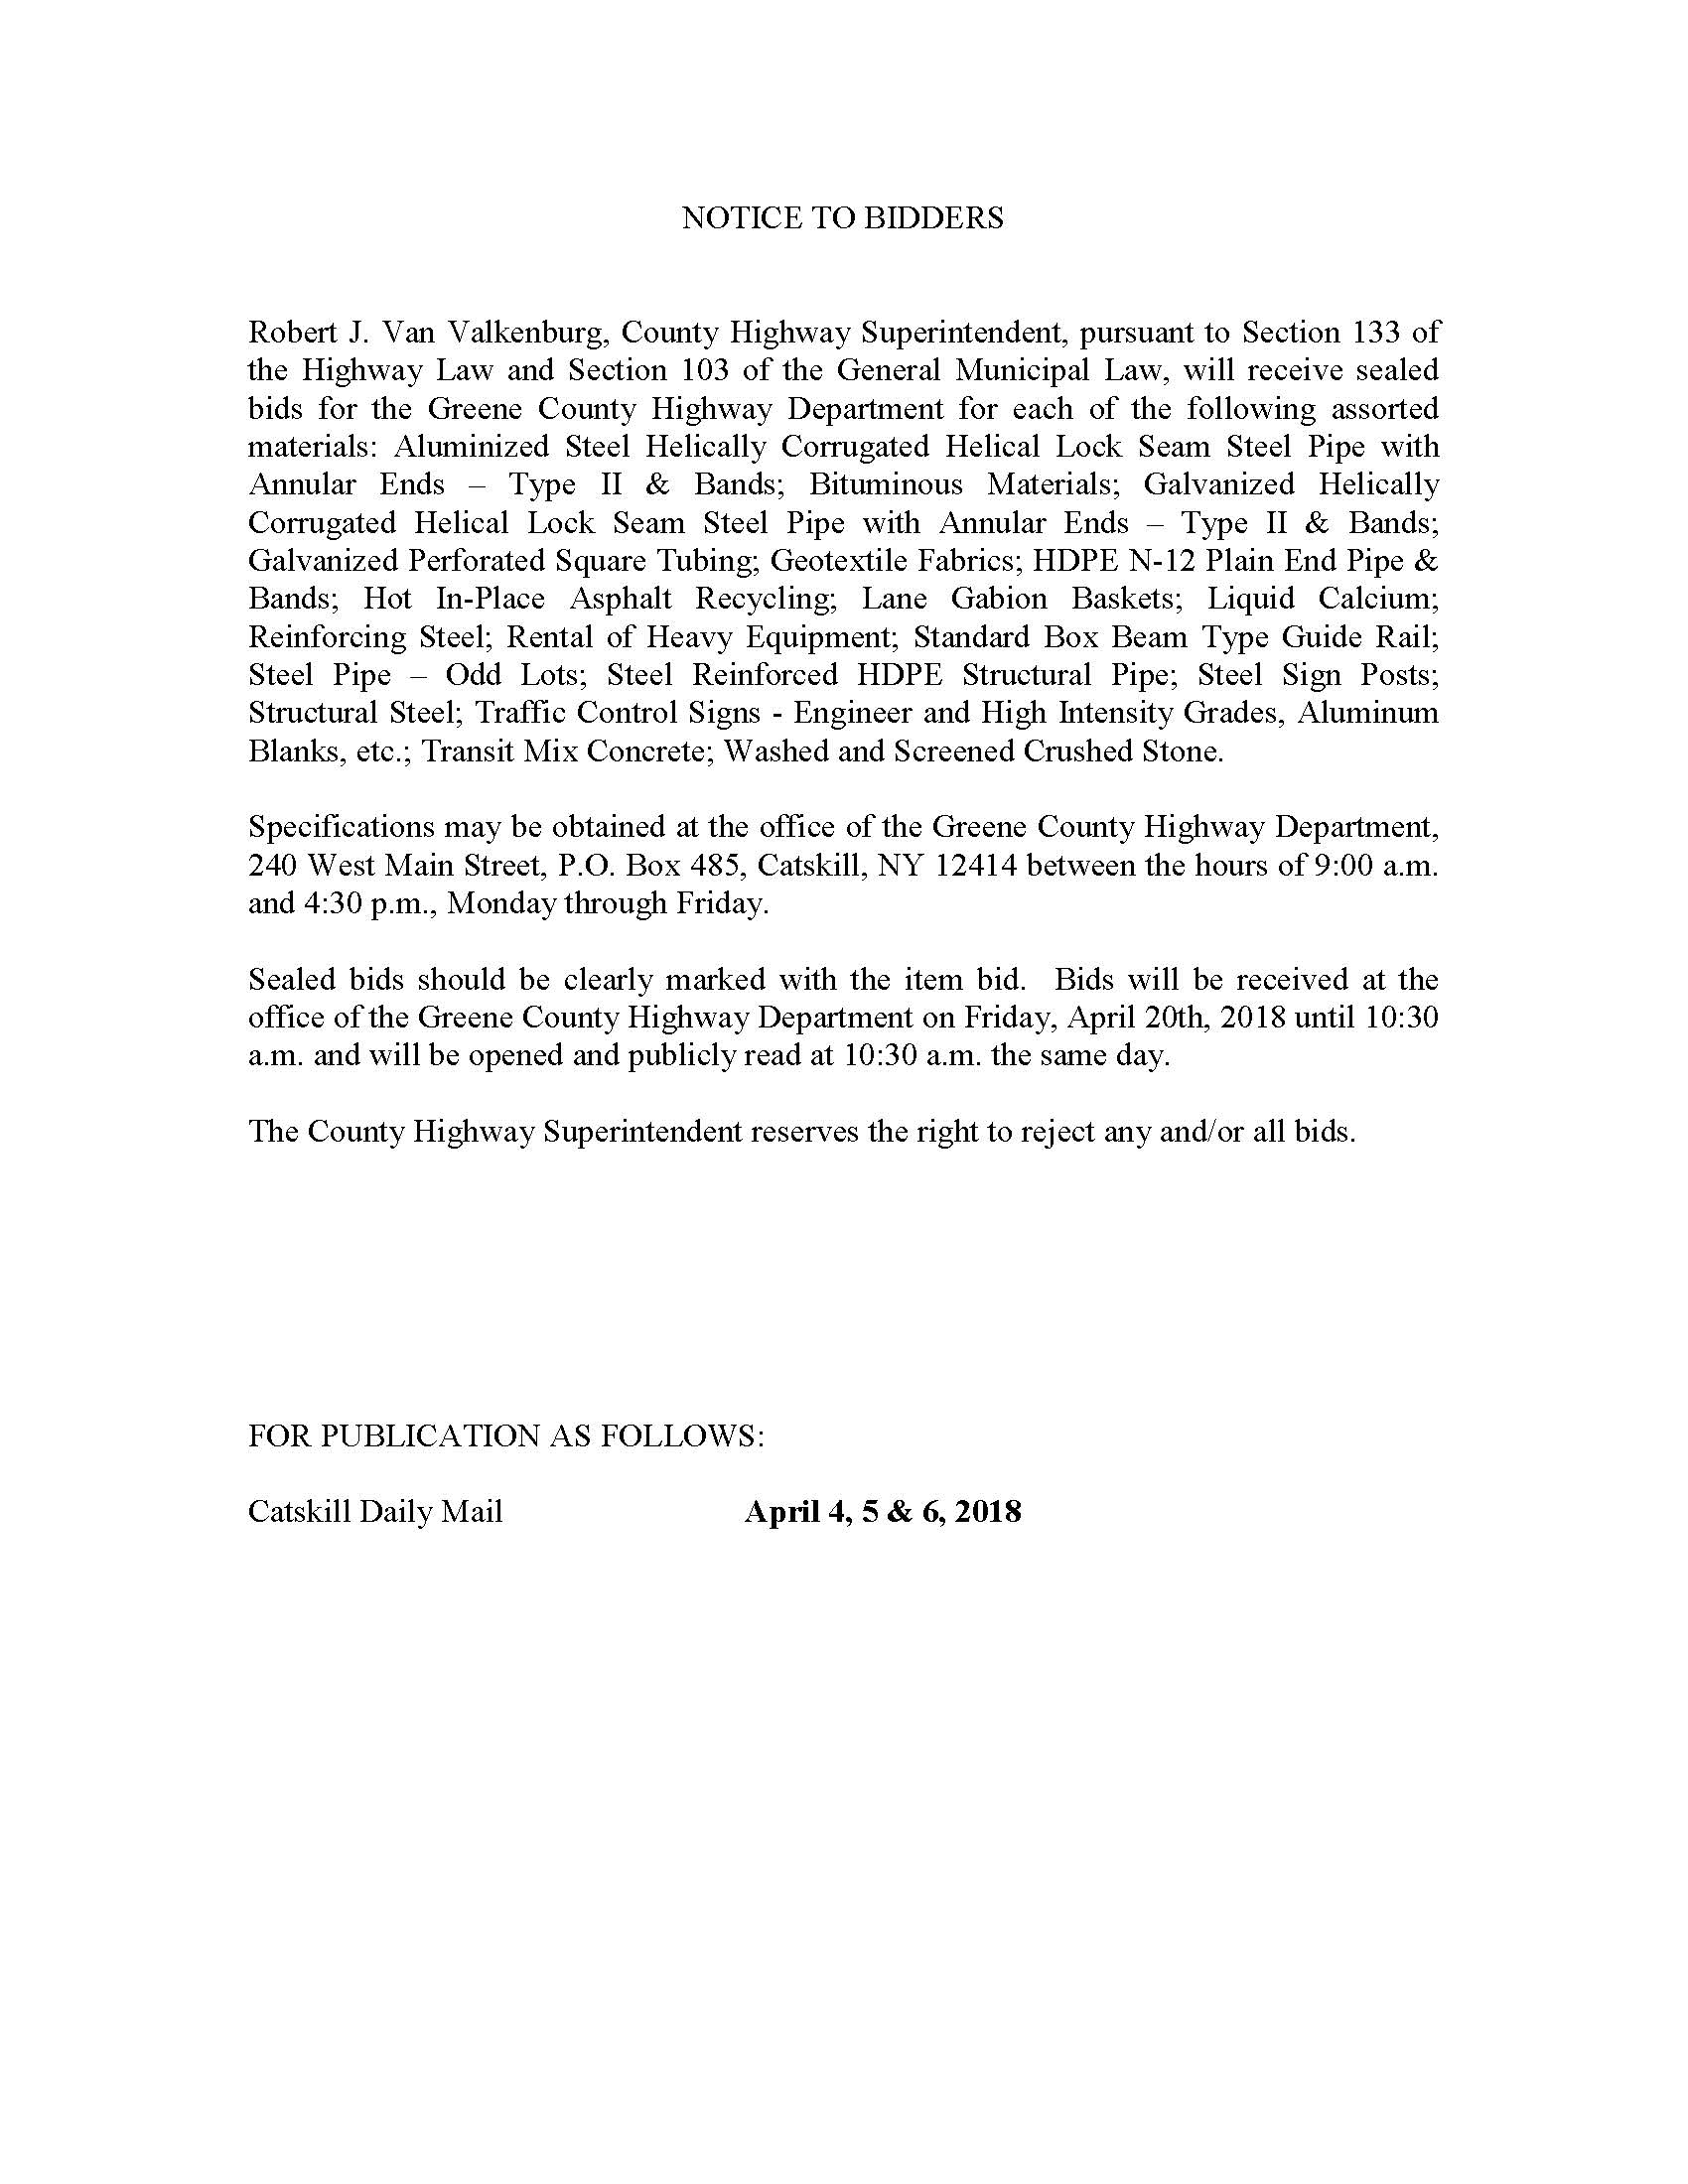 Notice To Bidders - Materials & Stone - Greene Government